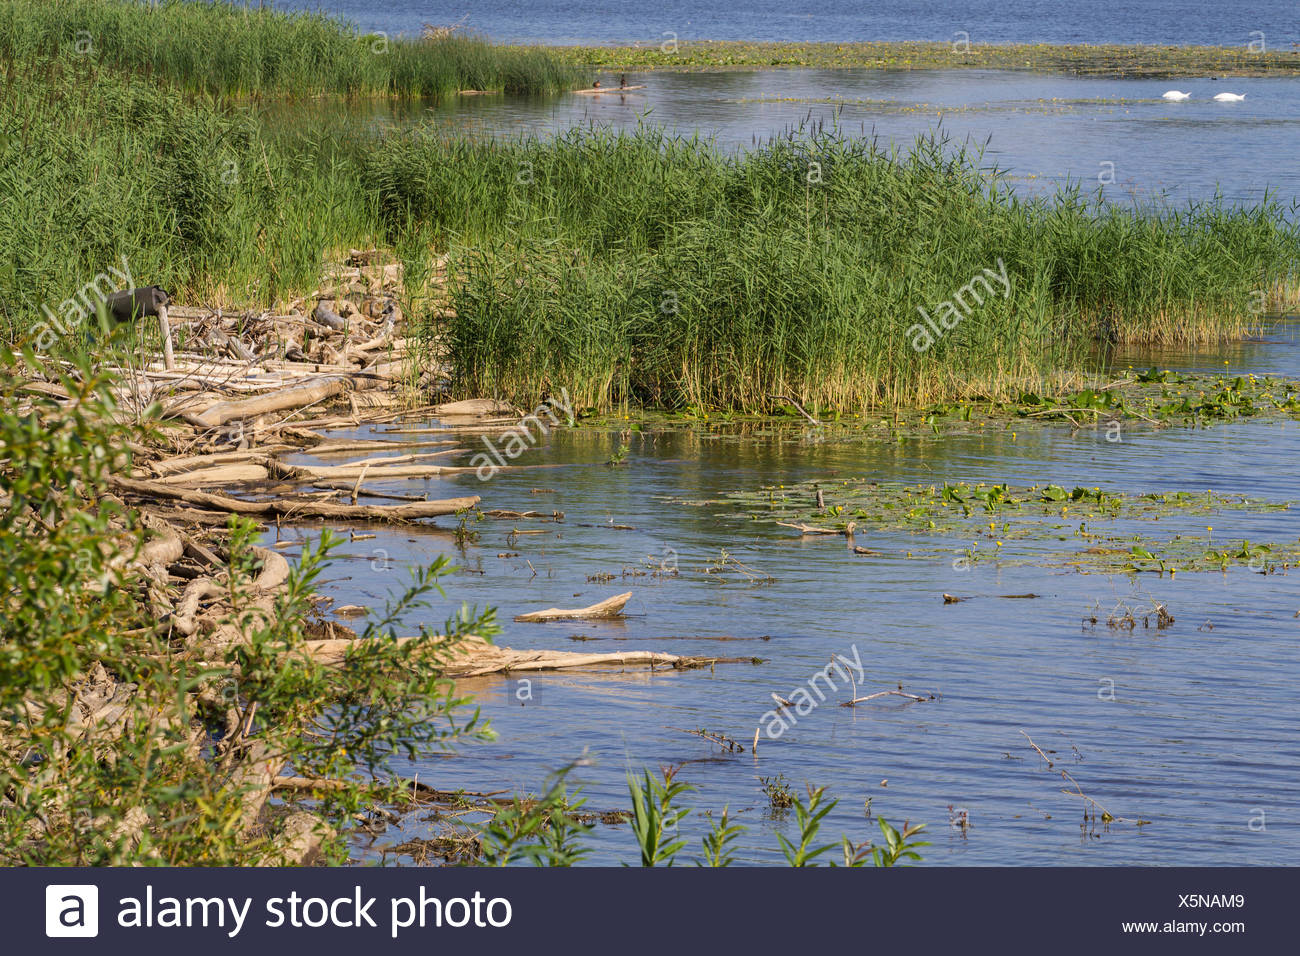 lakeside with driftwood and reed, Germany, Bavaria, Lake Chiemsee - Stock Image